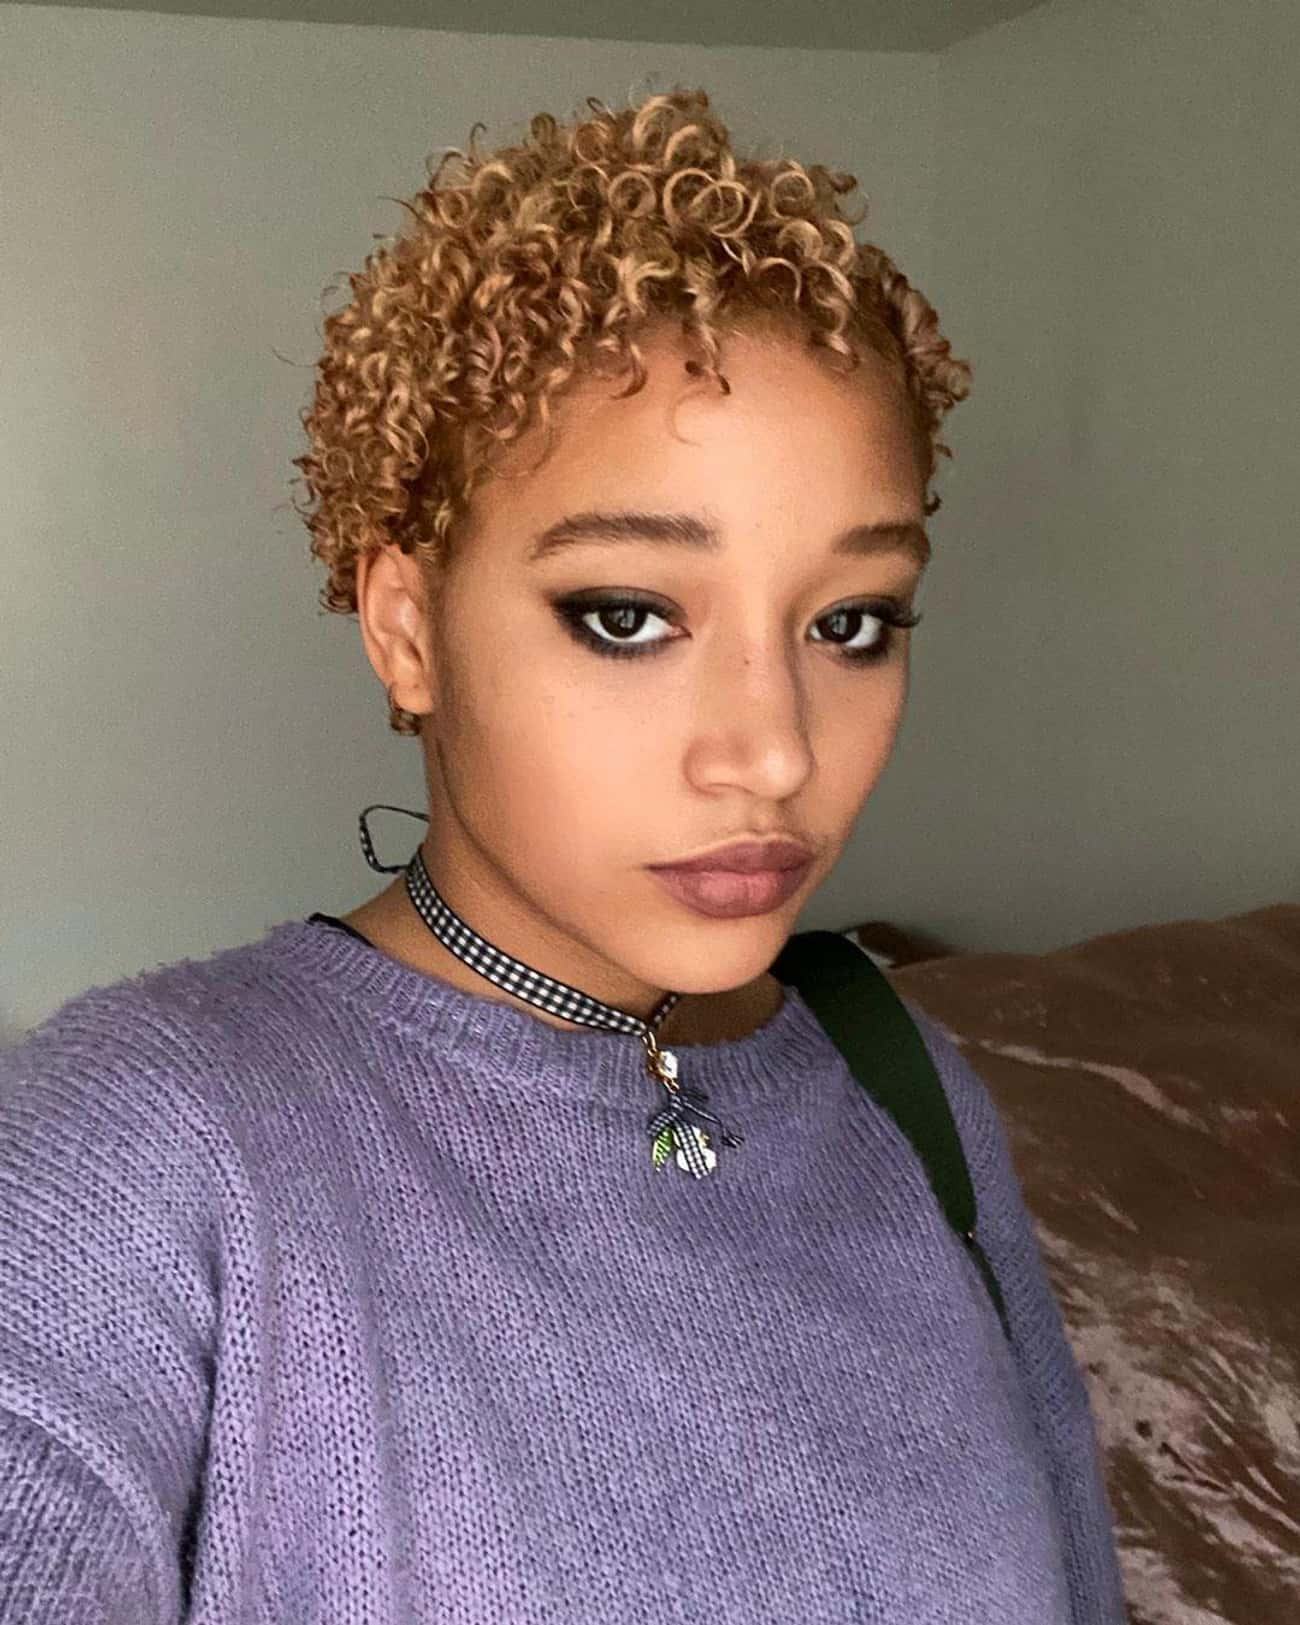 Read More About Amandla Stenbe is listed (or ranked) 3 on the list The Full Amandla Stenberg Dating History